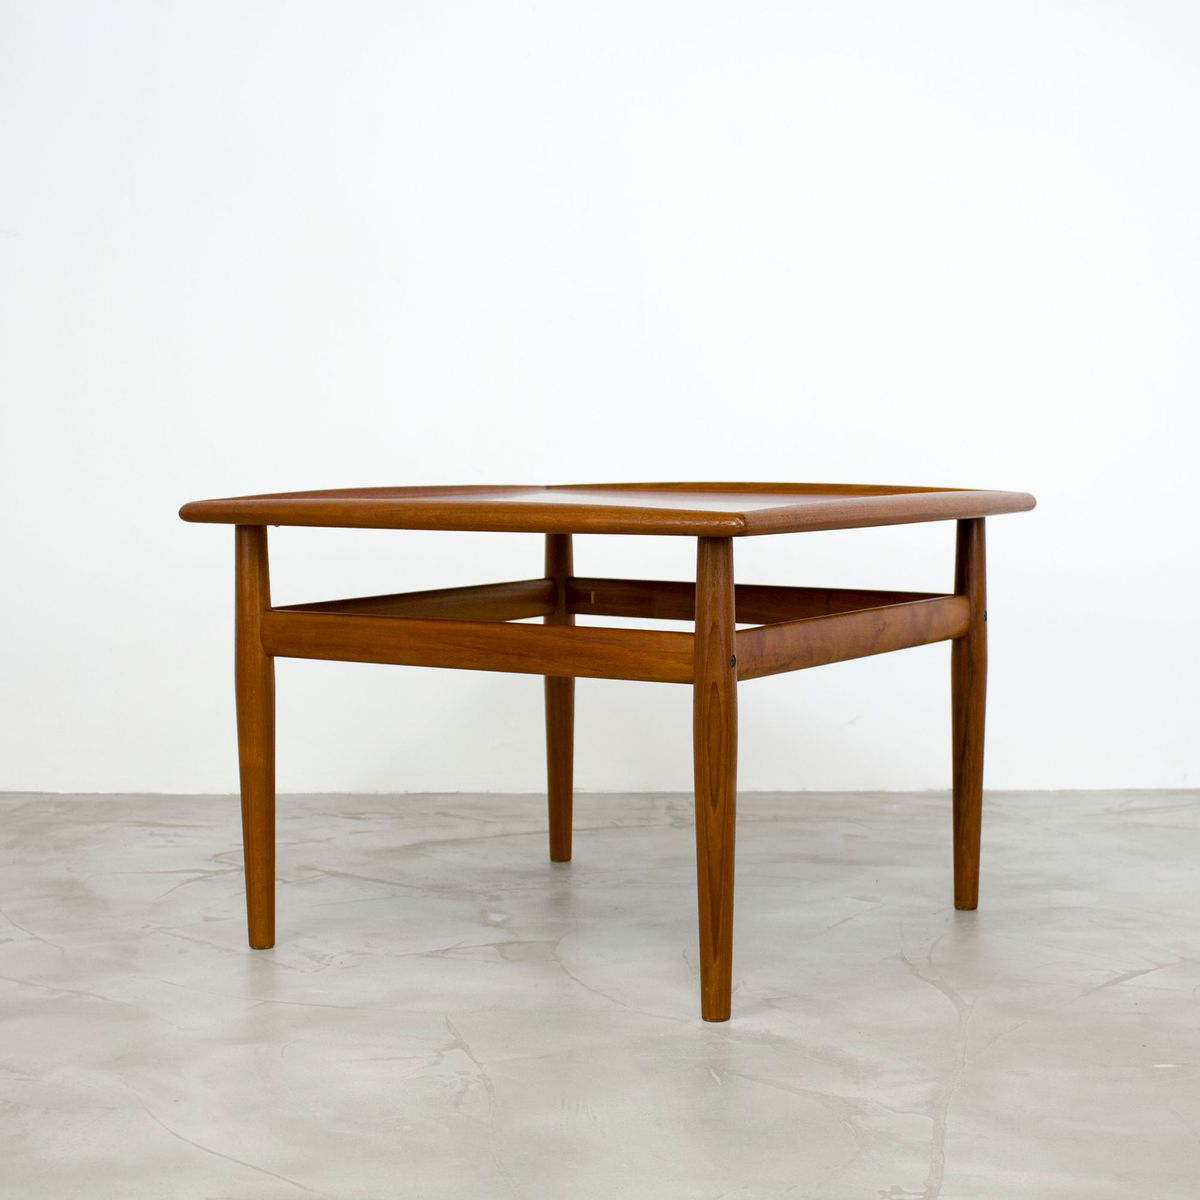 Vintage Square Teak Coffee Table By Grete Jalk For Glostrup For Sale At Pamono